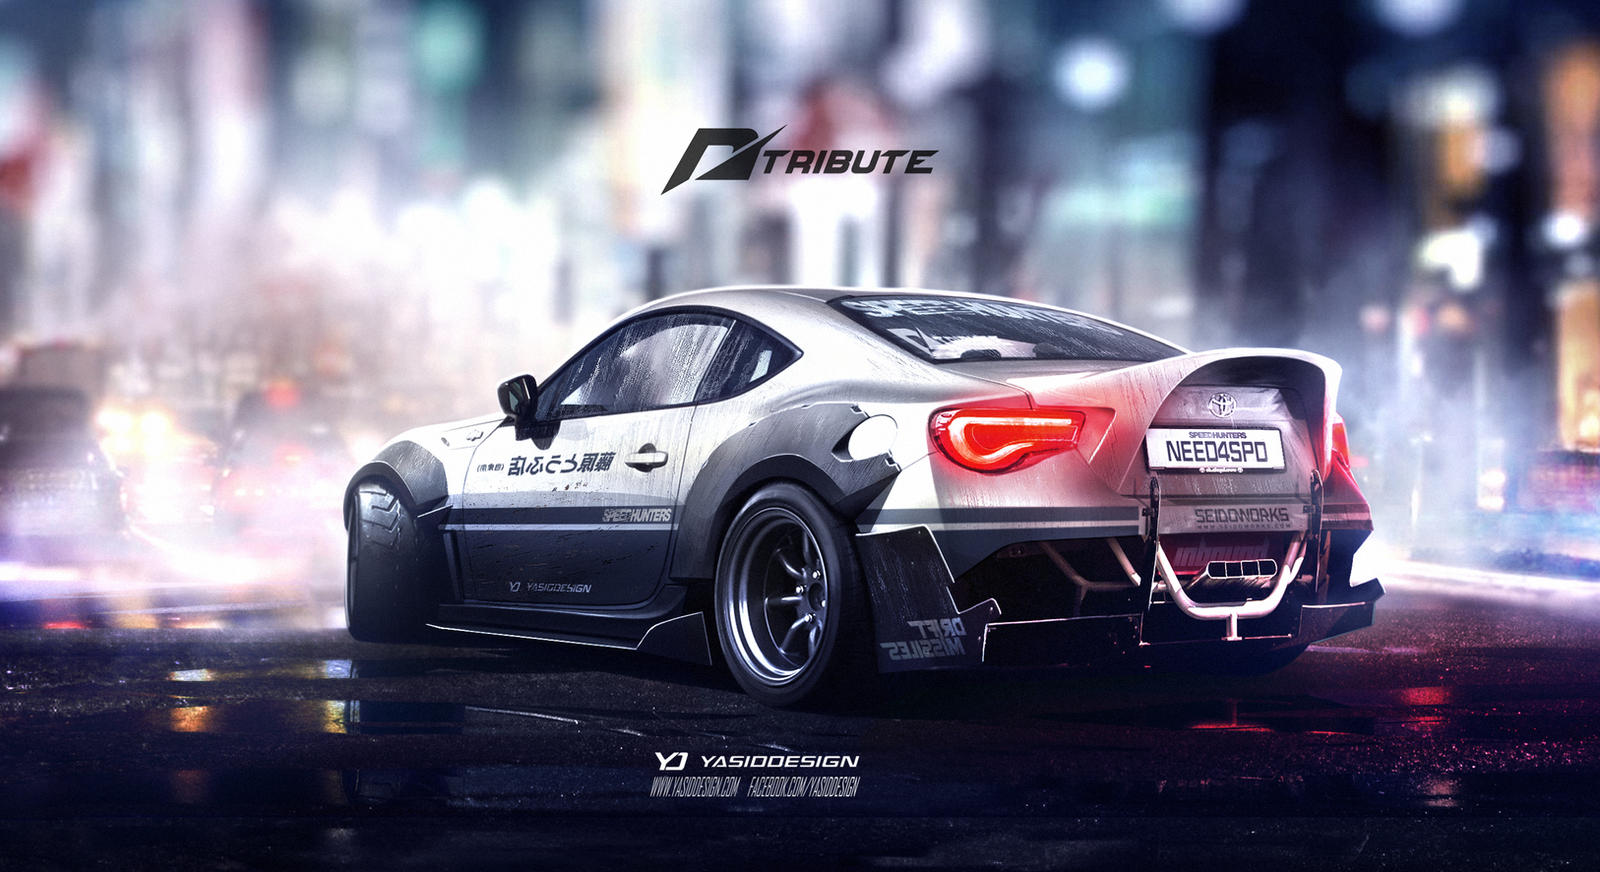 Wallpaper Toyota Supra Sports Car Need For Speed: Speedhunters Toyota GT 86 Need For Speed Tribute By